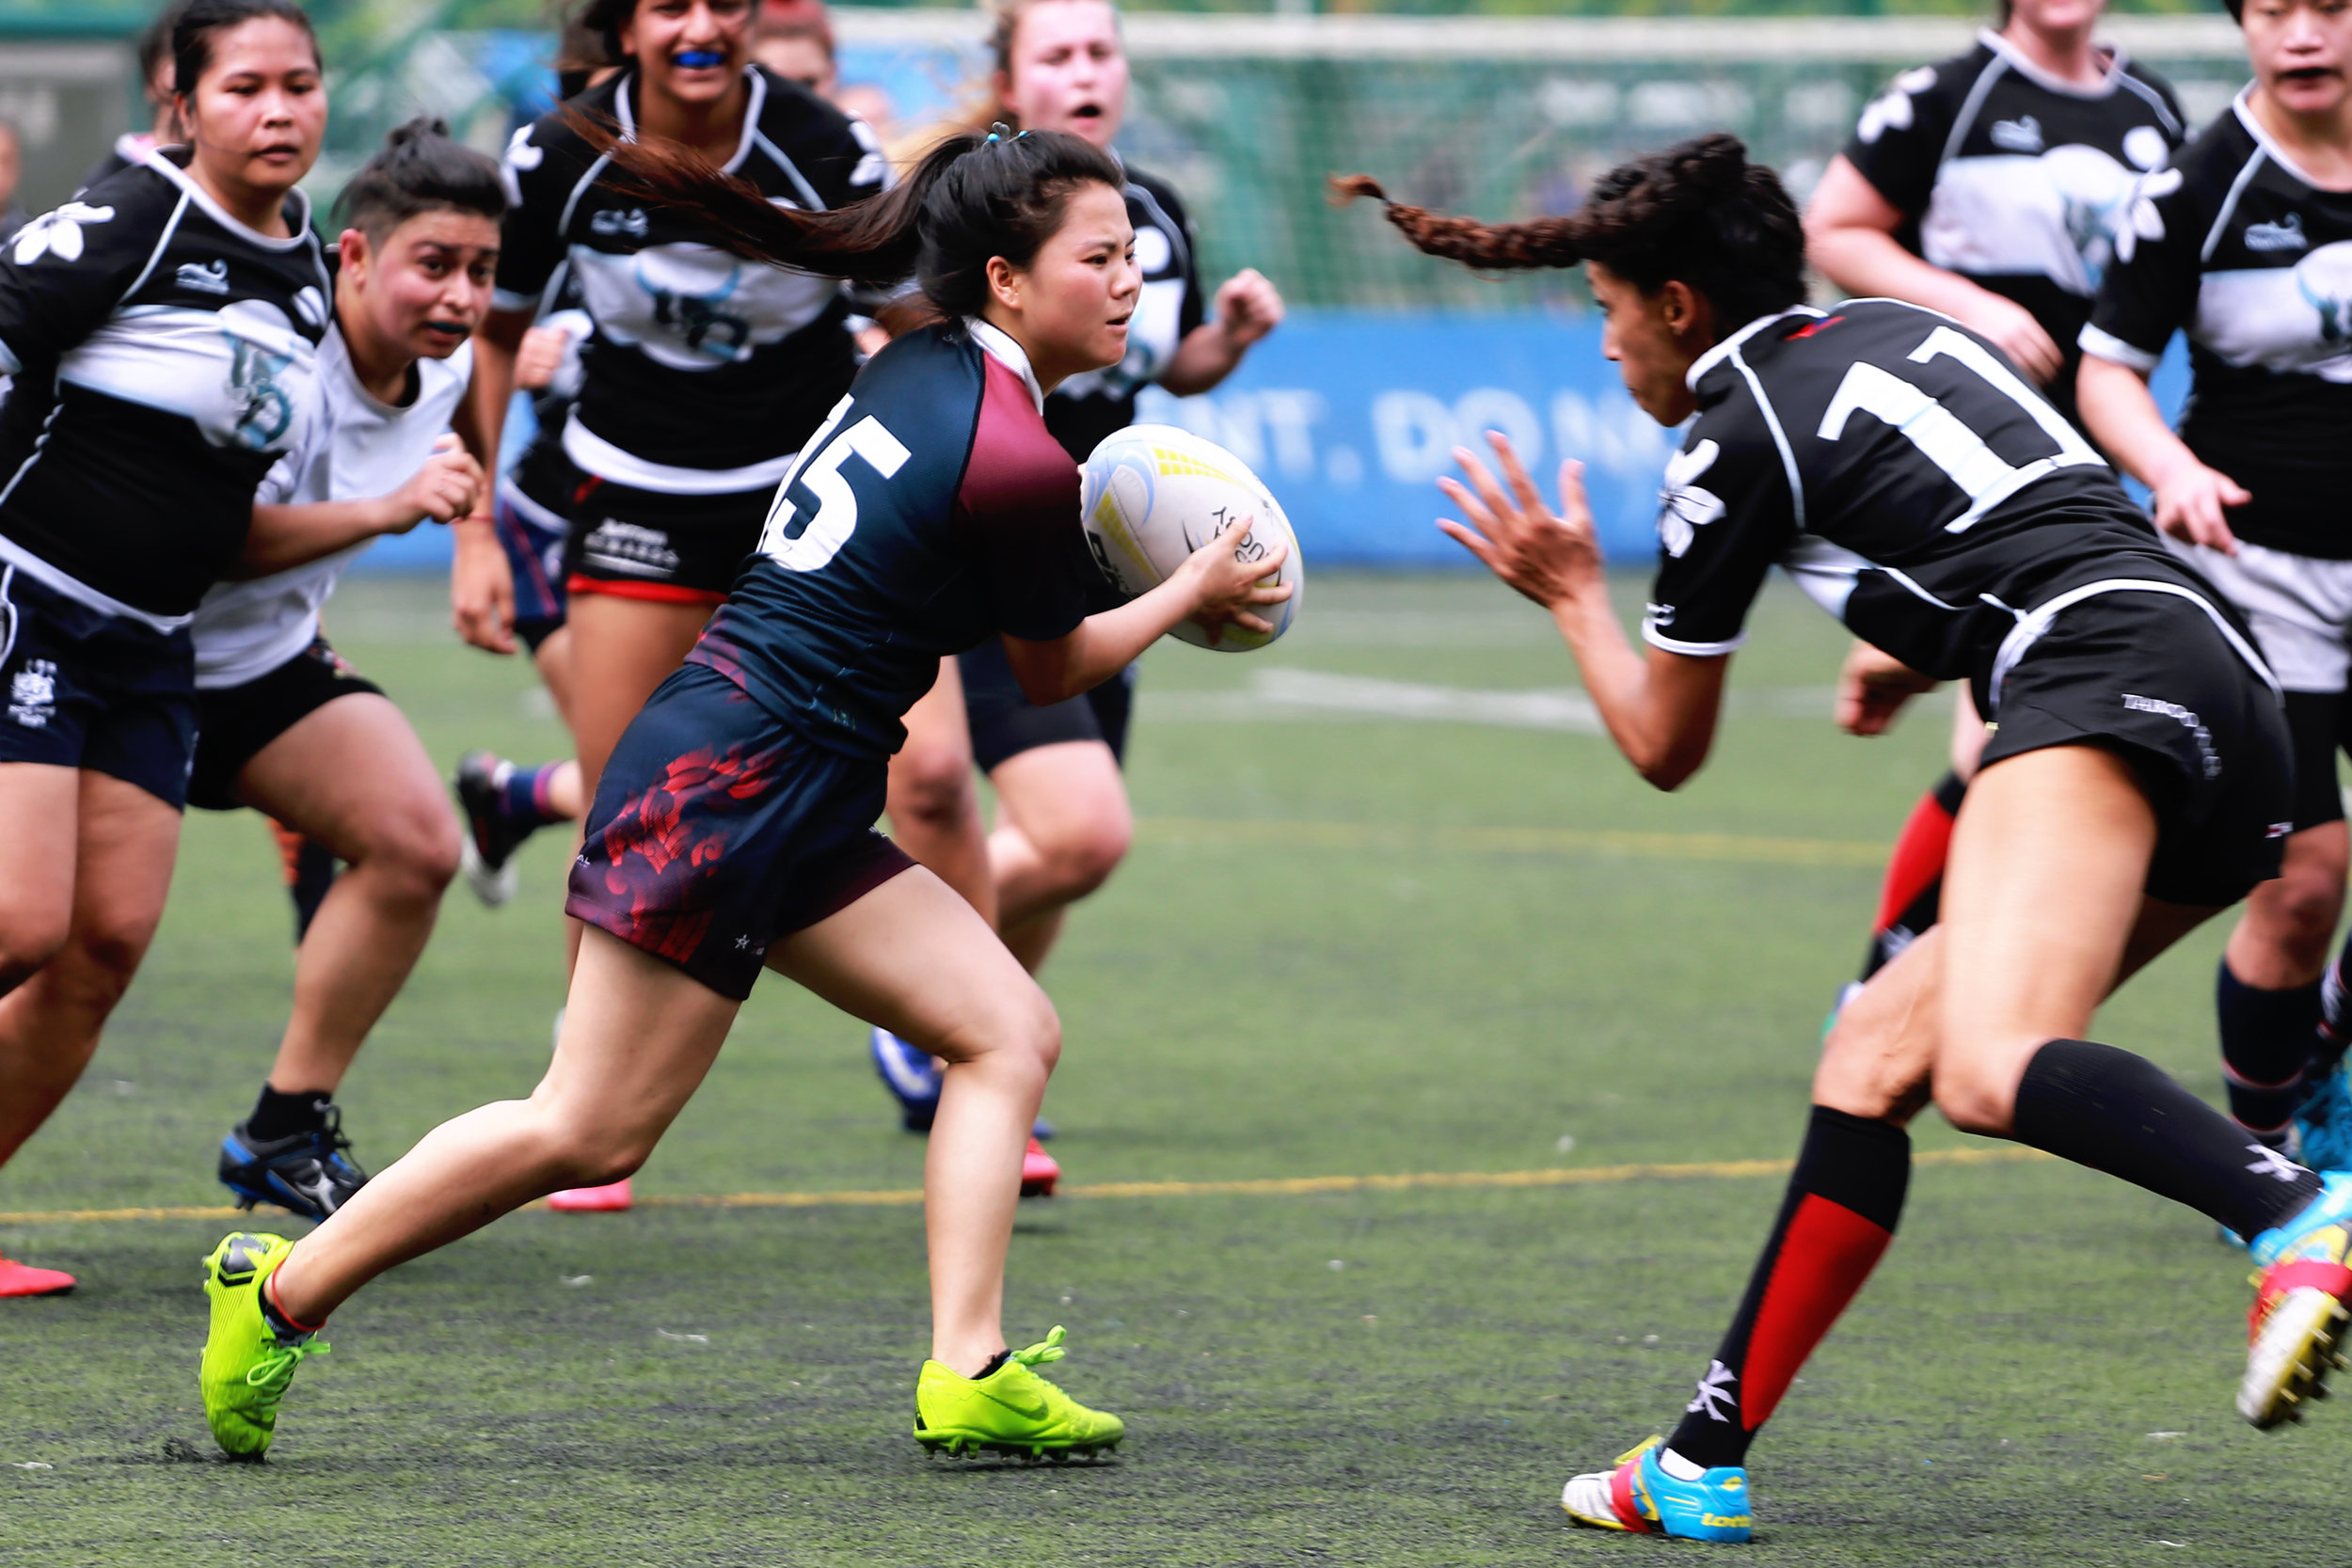 Aeng Khang's work as a ChildFund Pass It Back Coach and LRF staff member has led her to support 700 youth players - more than half of them girls - to participate in the rugby and life skills curriculum.